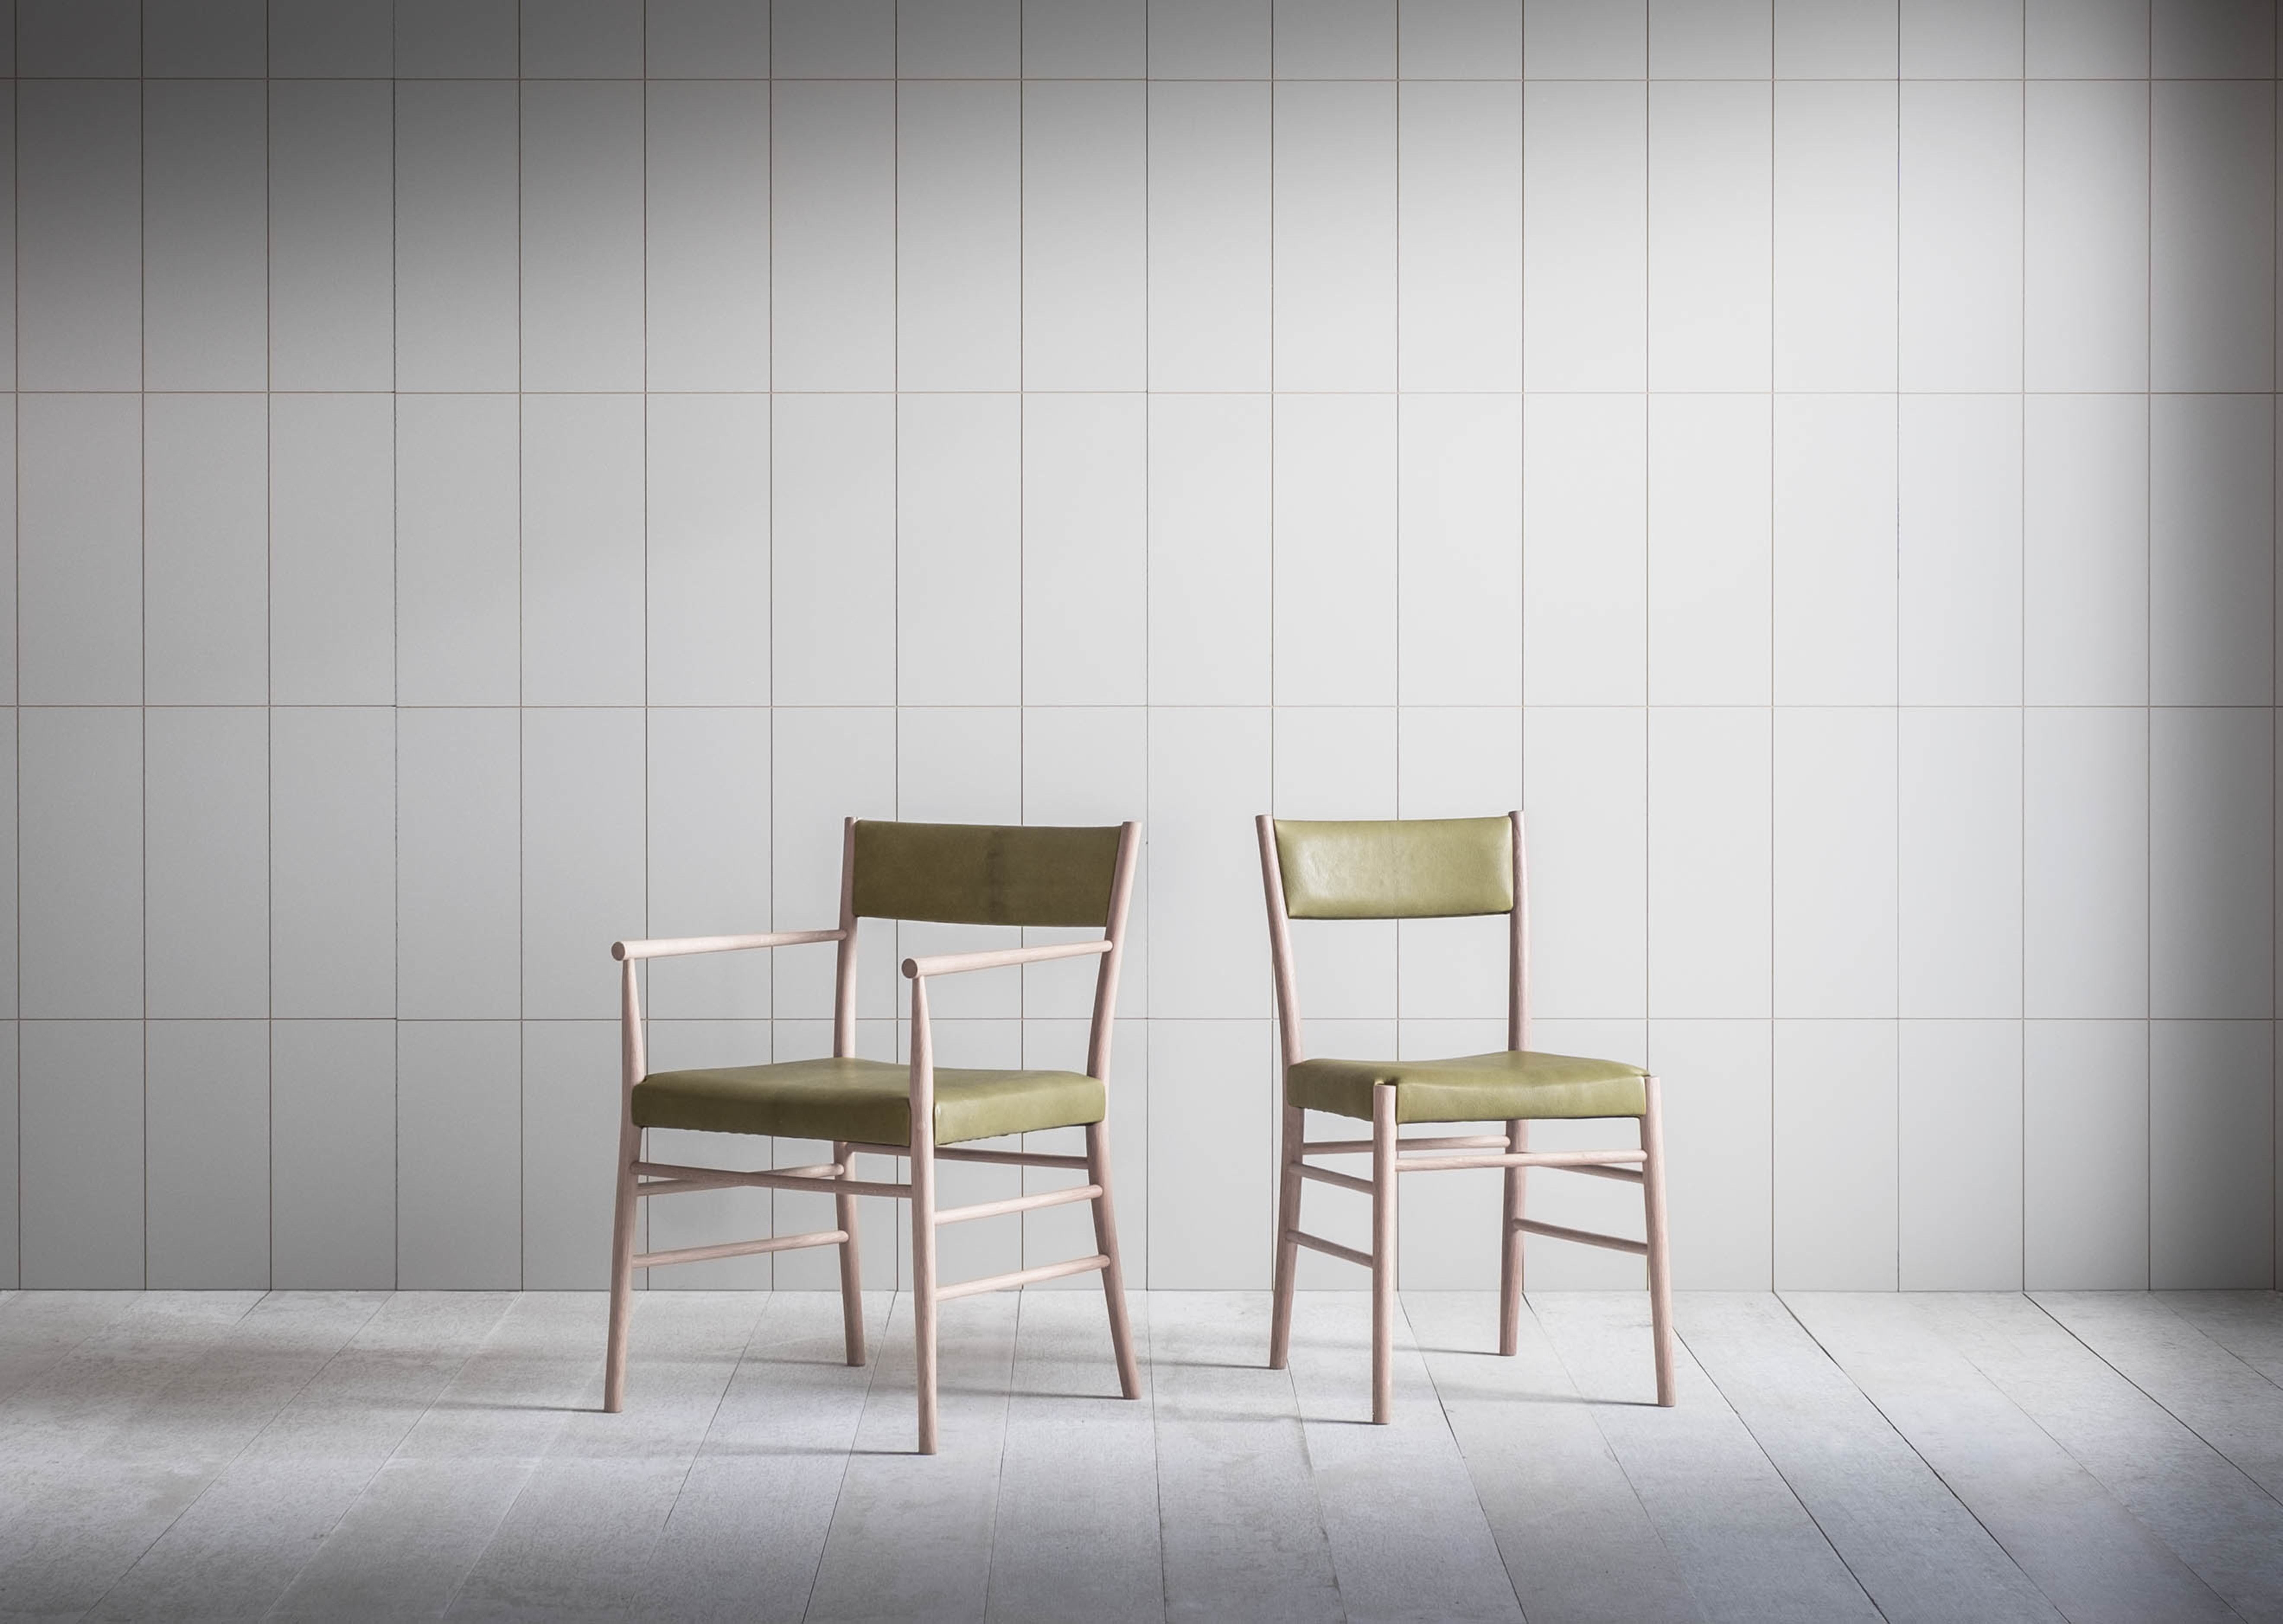 Upholstered Avery dining chair and armchair in olive leather and oak